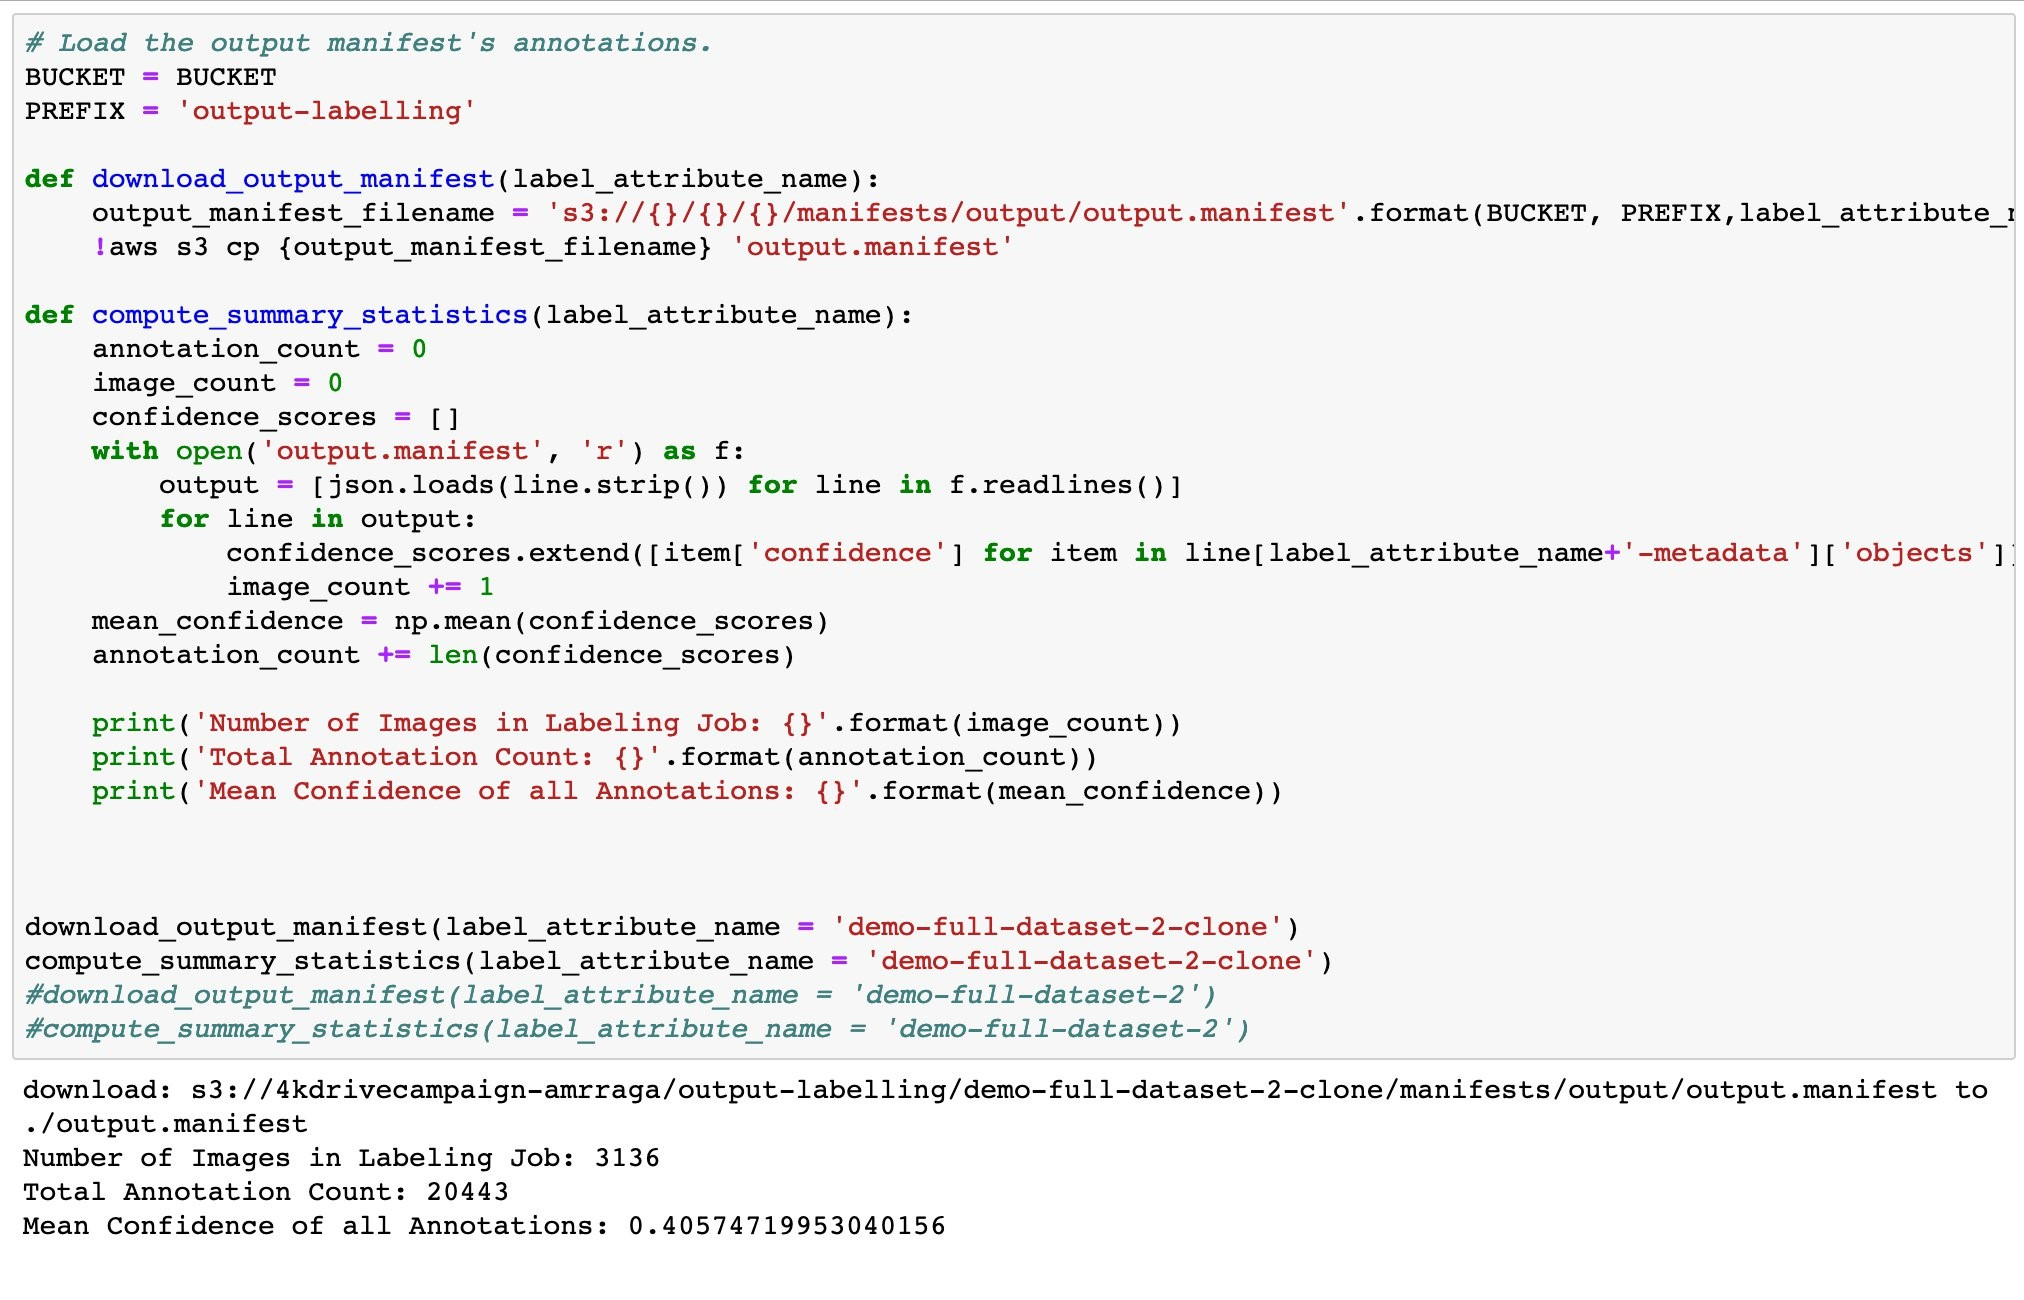 Code to calculate the number of annotations and the mean confidence score for two jobs.